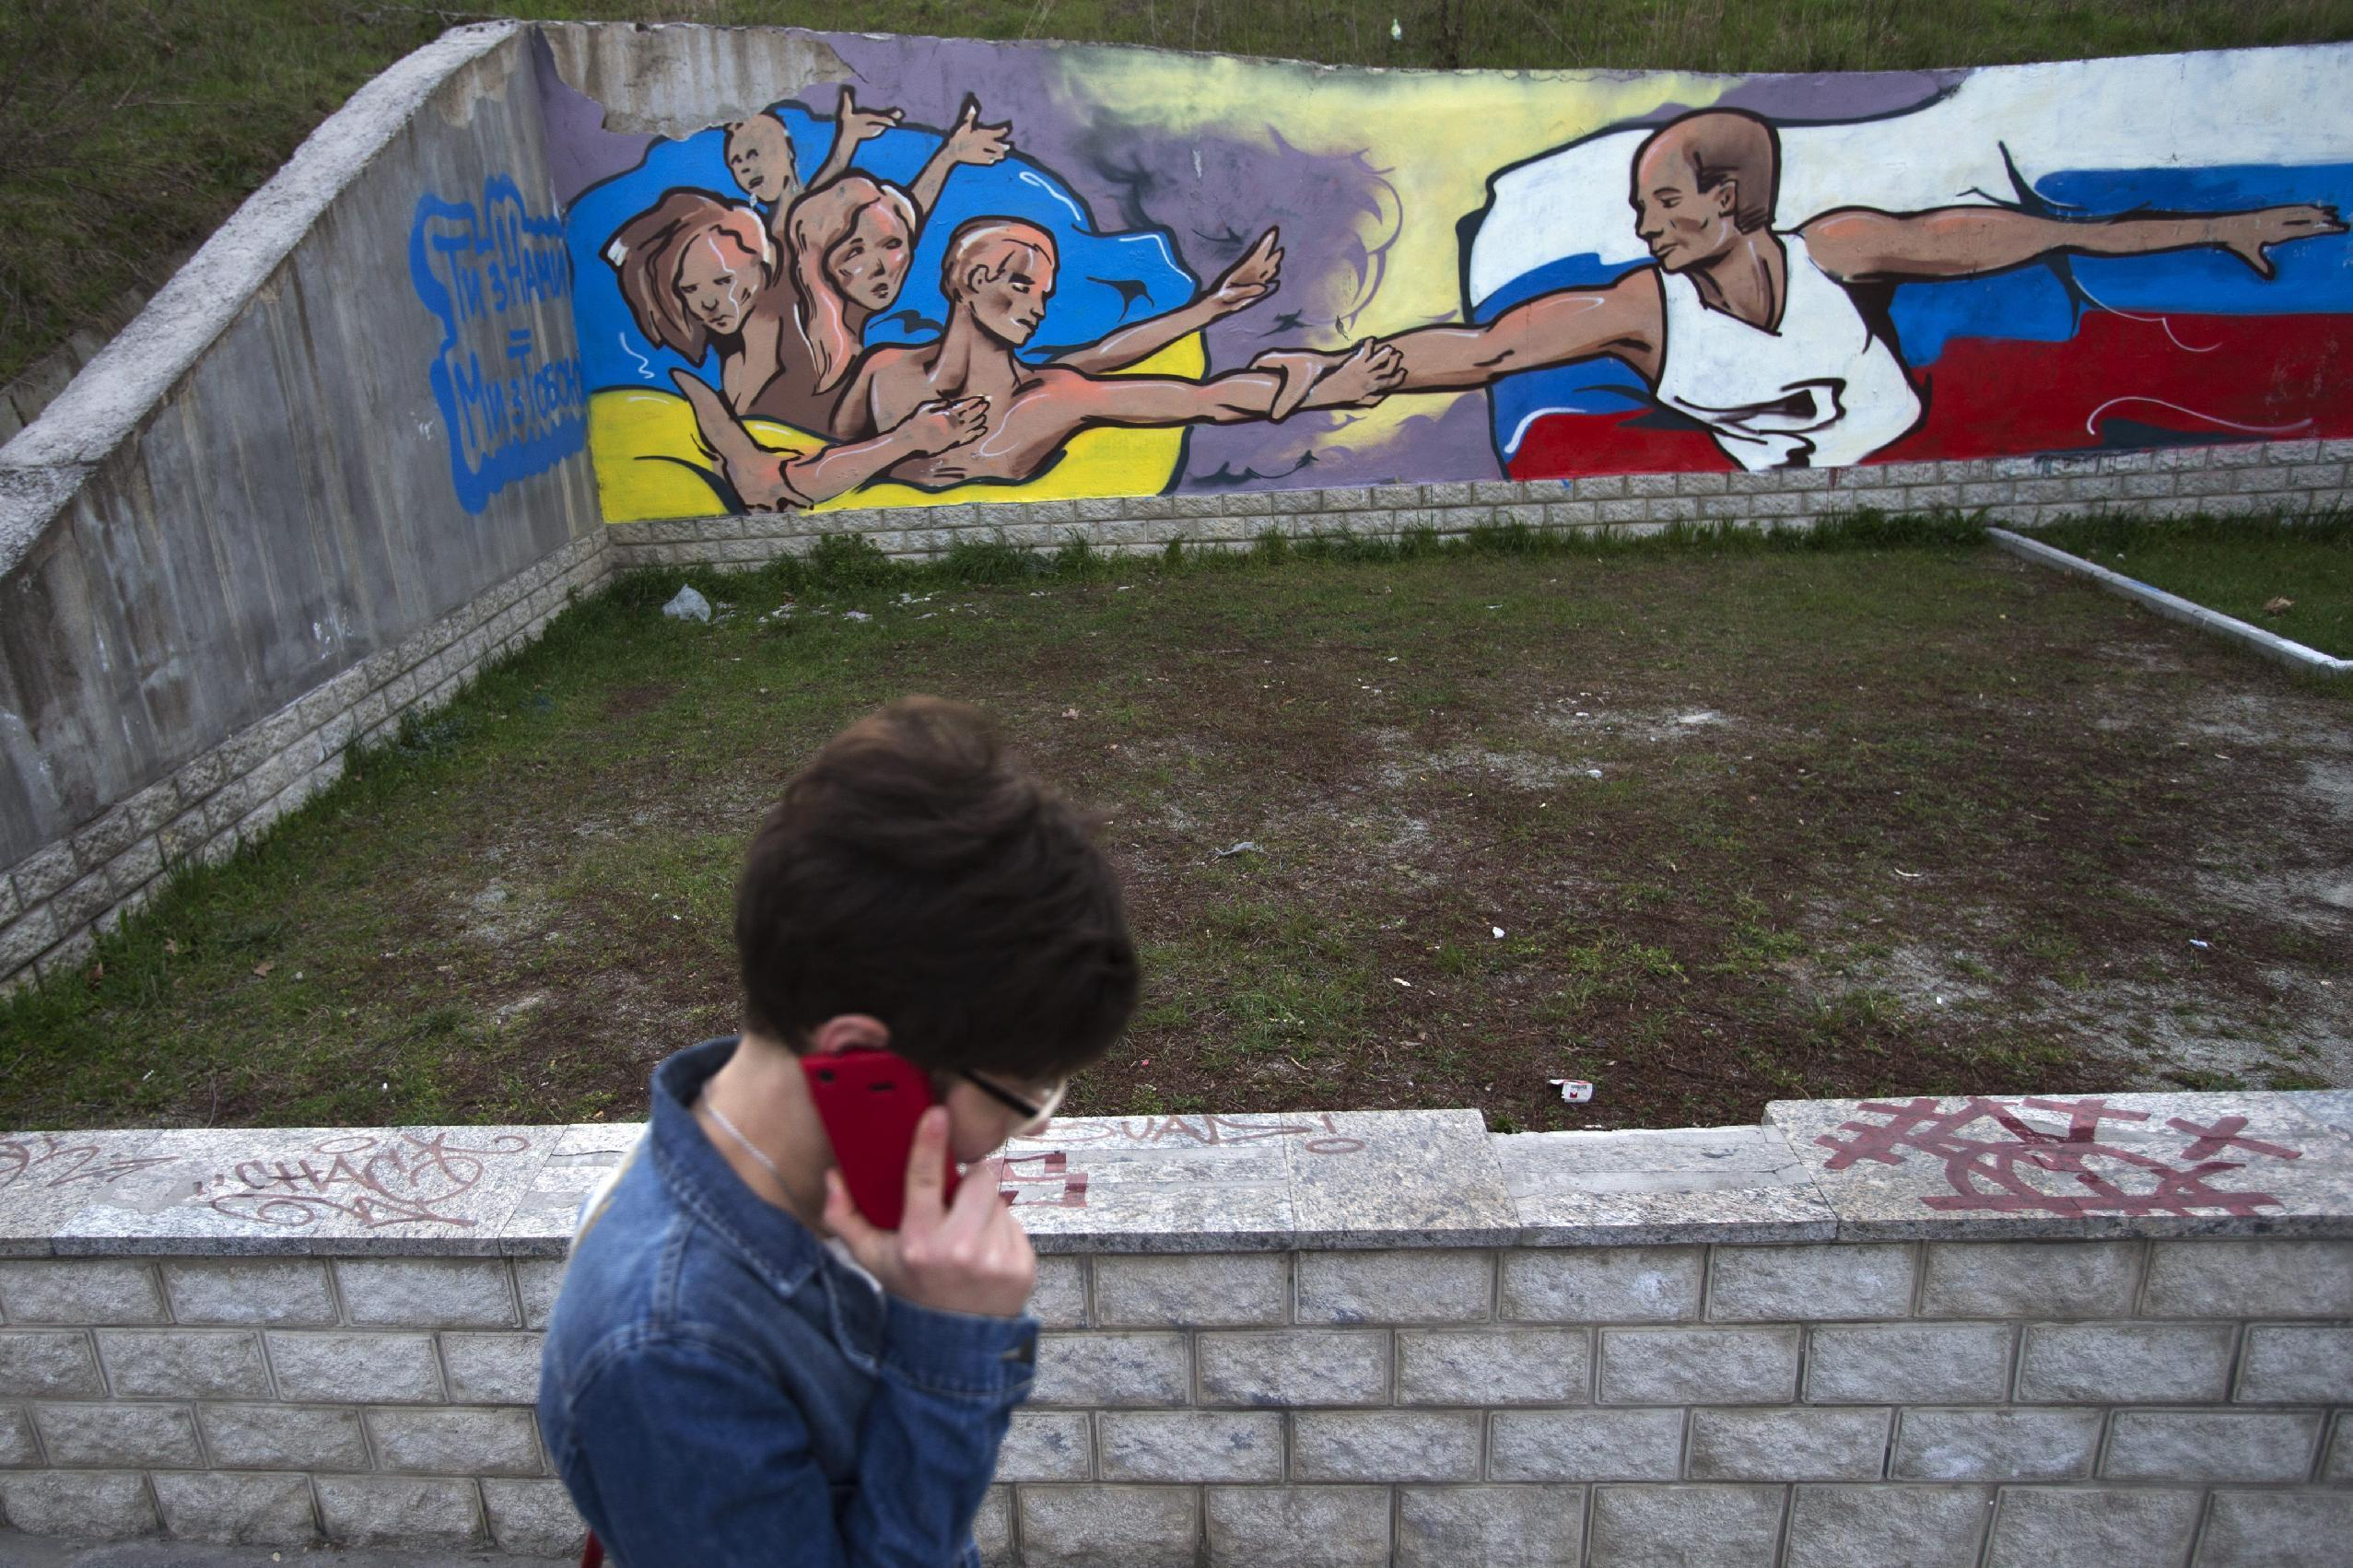 A Ukrainian woman passes by a wall covered with graffiti showing the flags of Ukraine and Russia united in Simferopol, Crimea, Tuesday, March 25, 2014. (AP Photo/Pavel Golovkin)